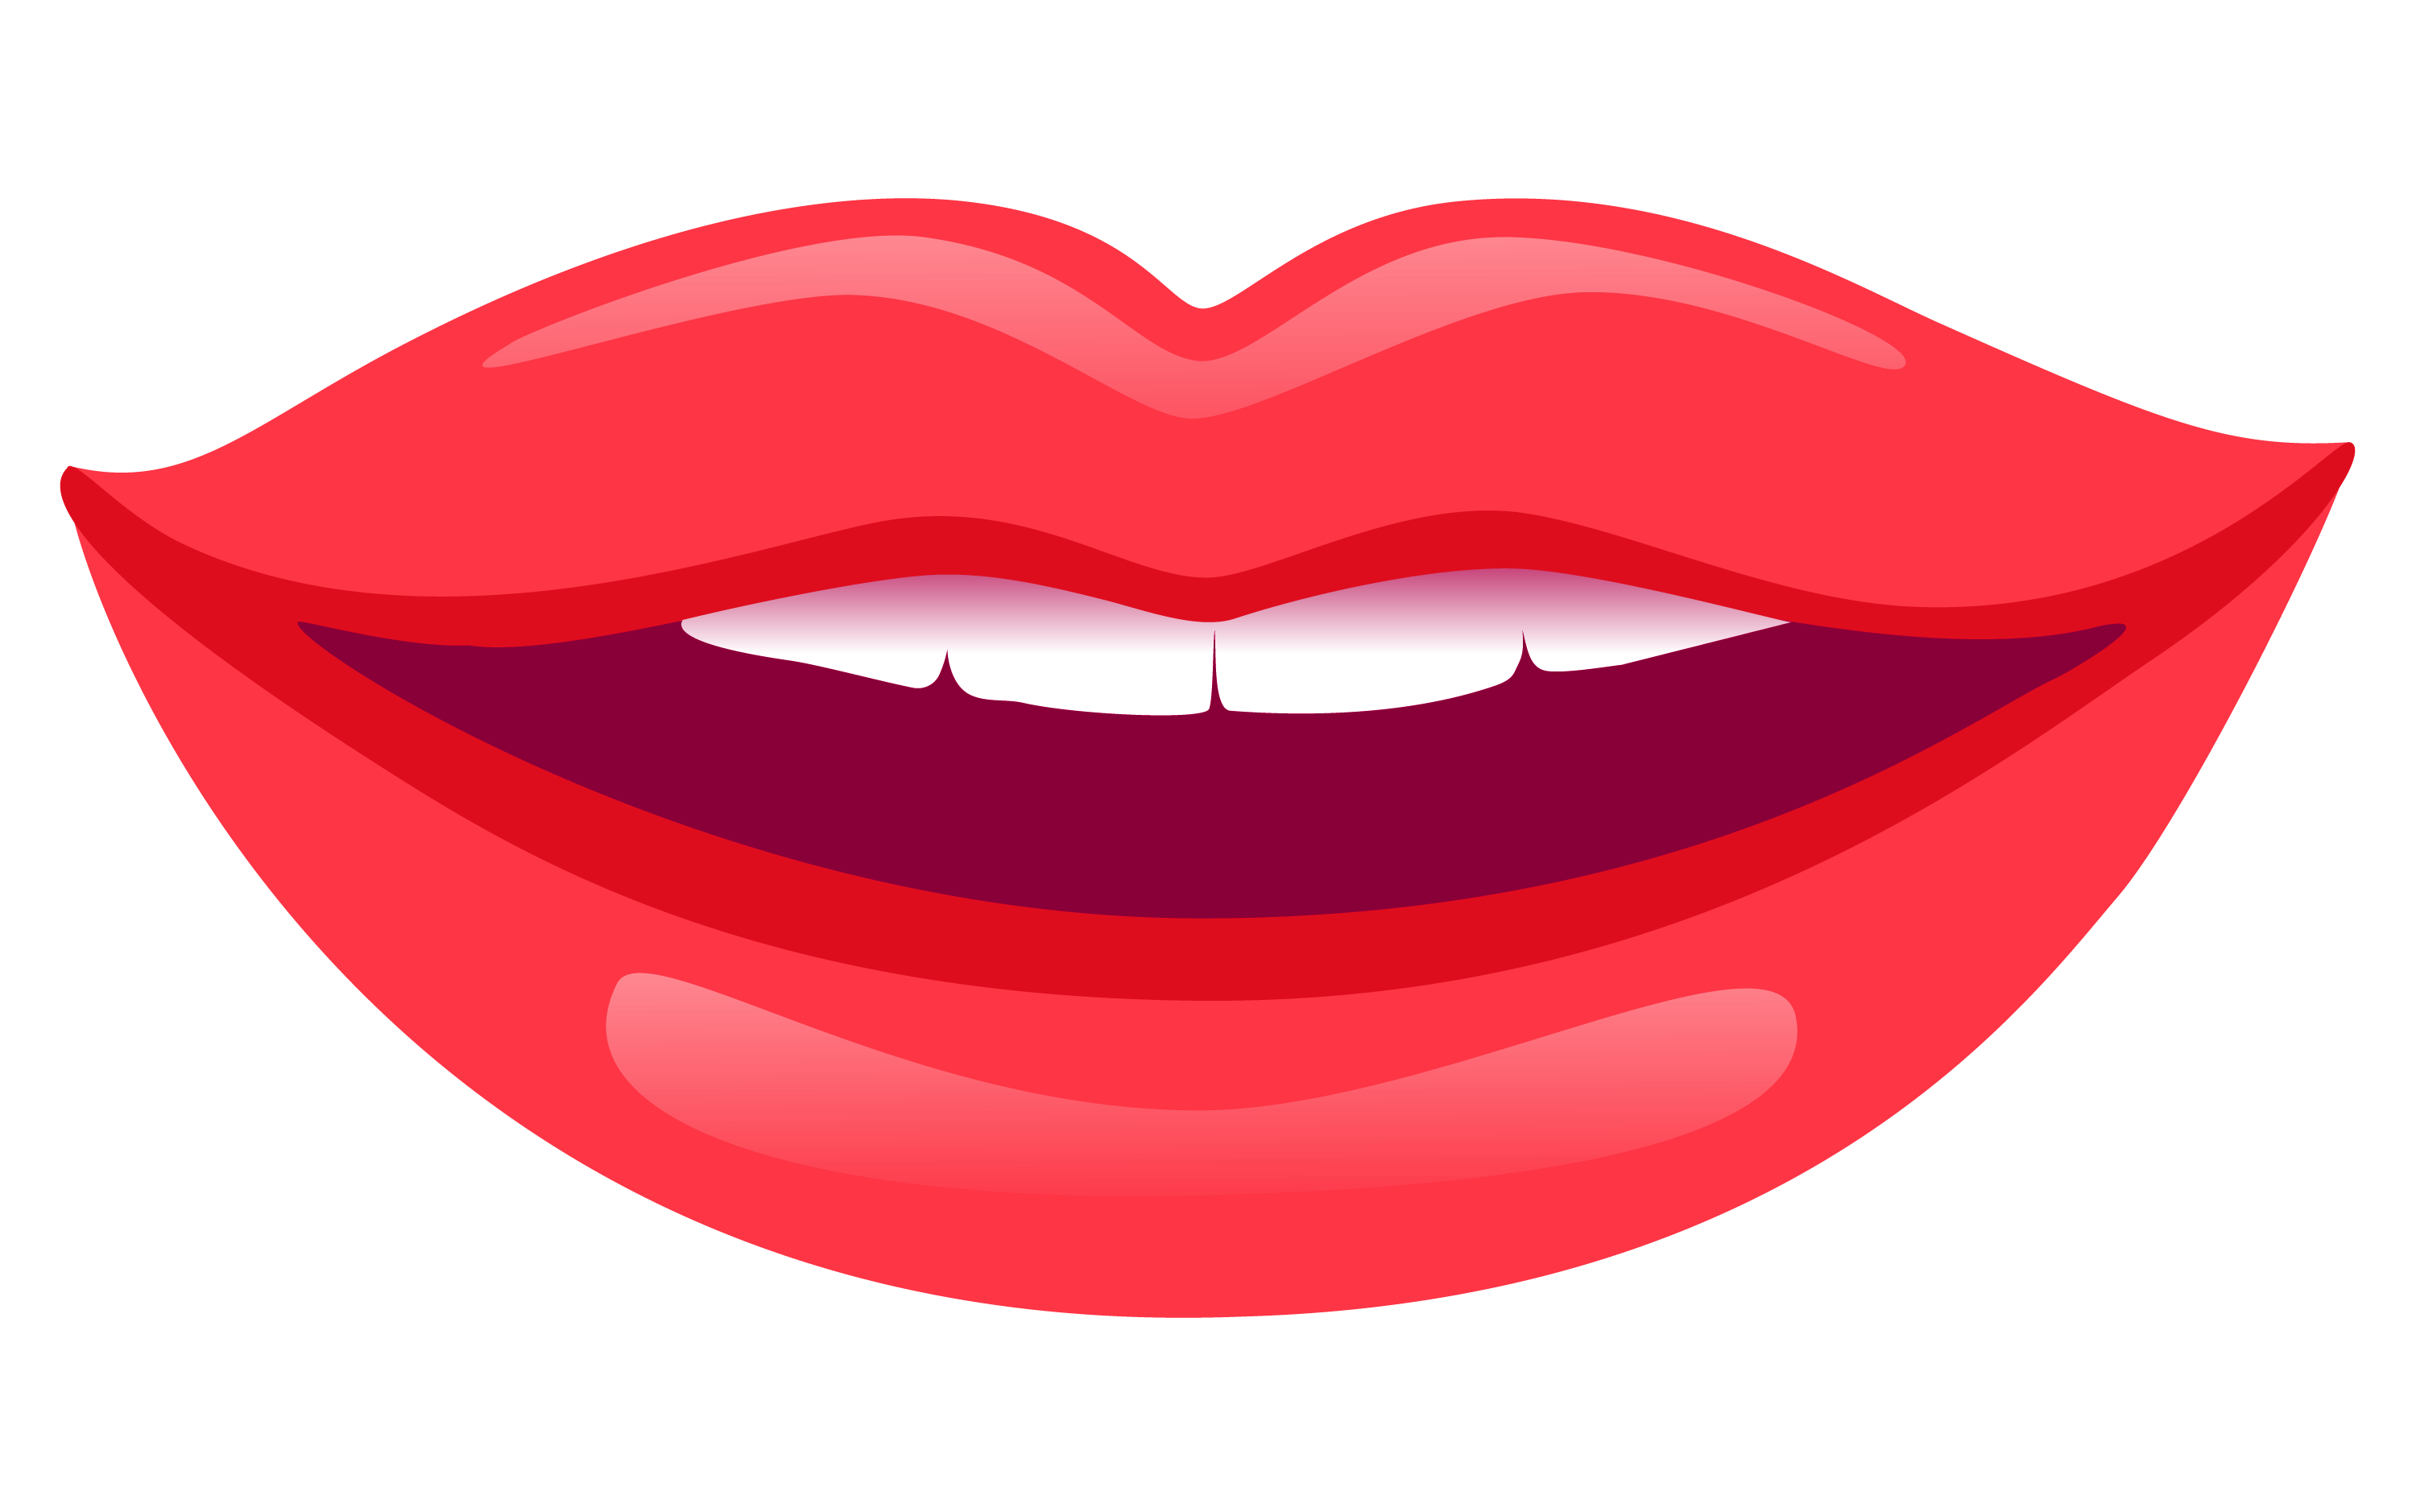 Smile Lips PNG - 45673